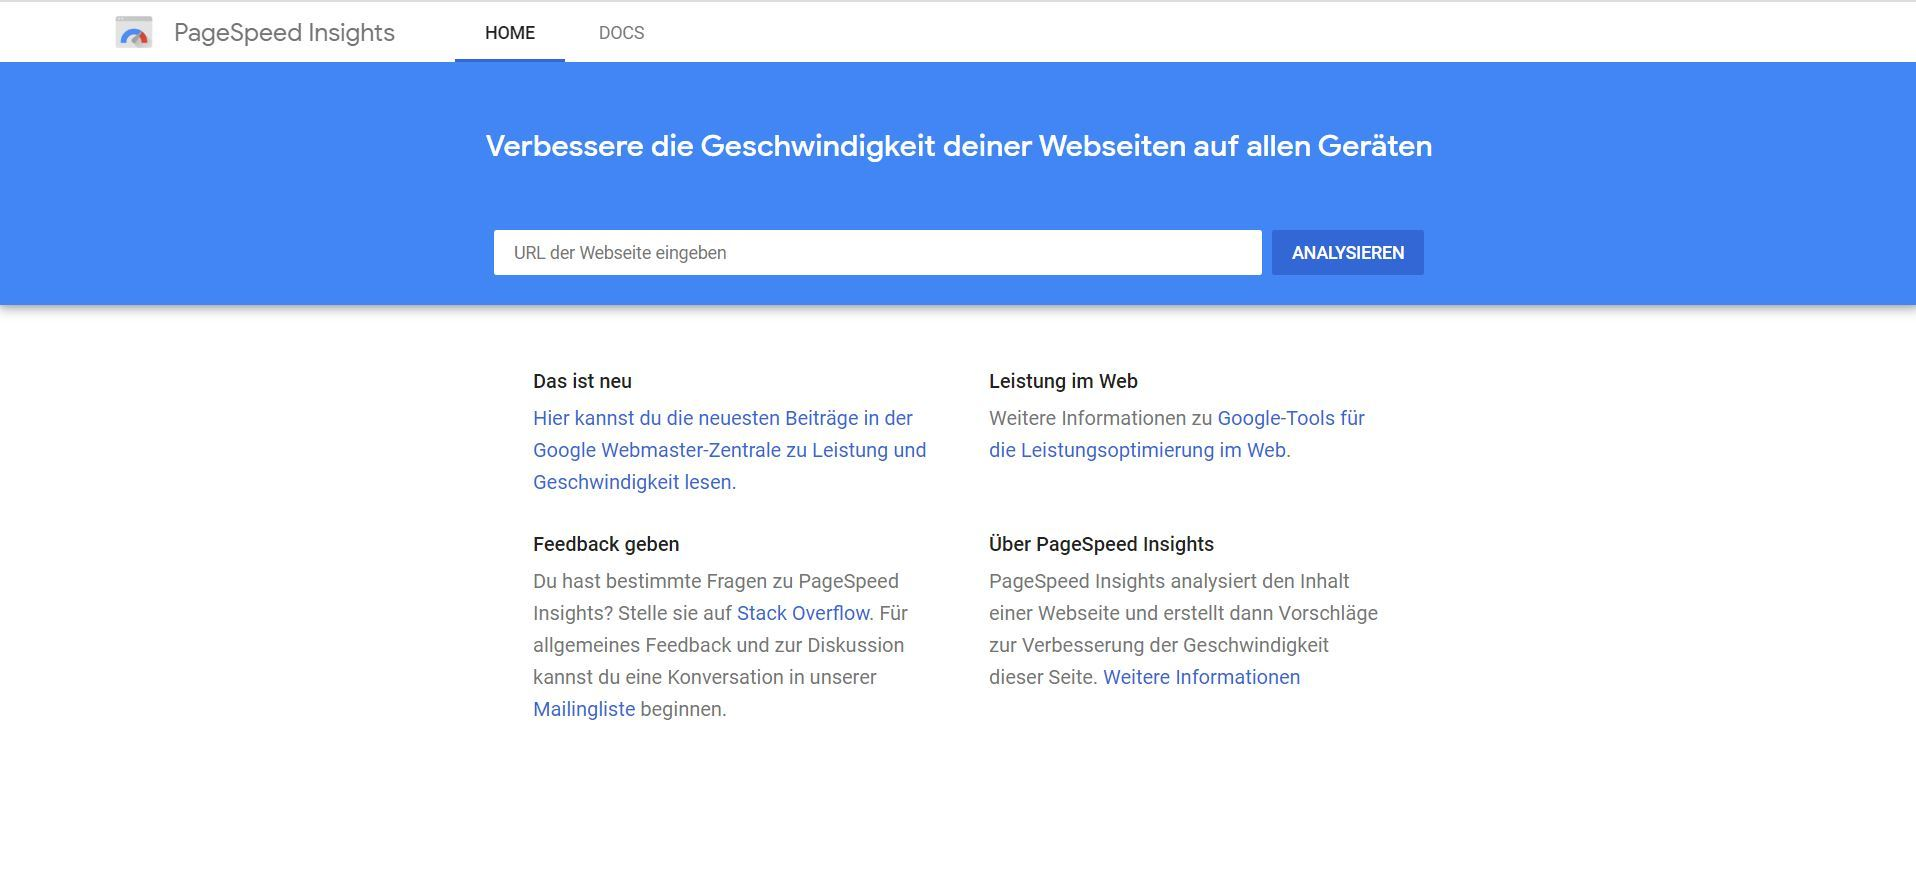 Google PageSpeed Insights: URL eingeben